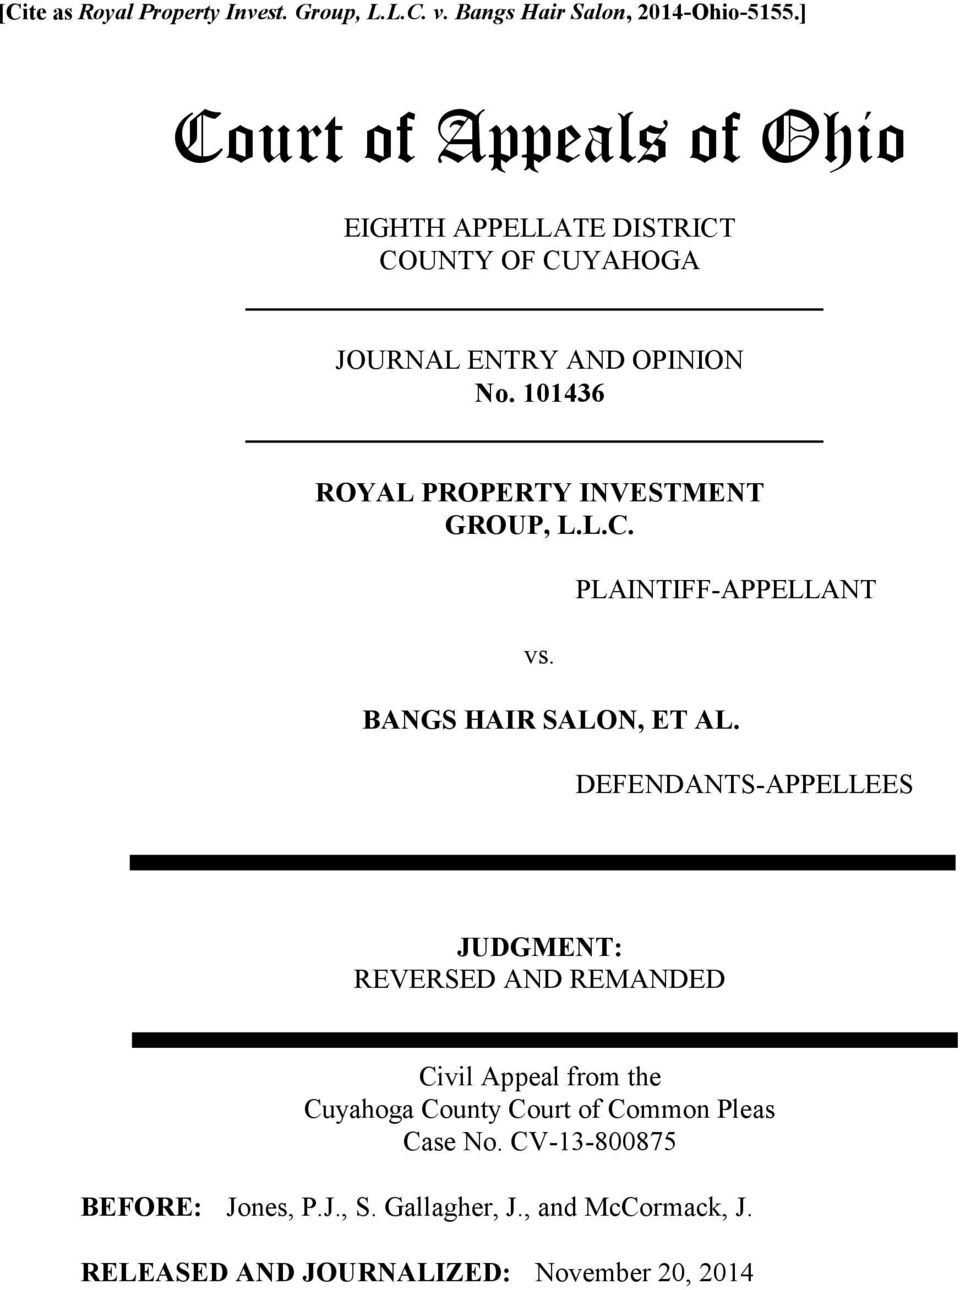 101436 ROYAL PROPERTY INVESTMENT GROUP, L.L.C. vs. PLAINTIFF-APPELLANT BANGS HAIR SALON, ET AL.